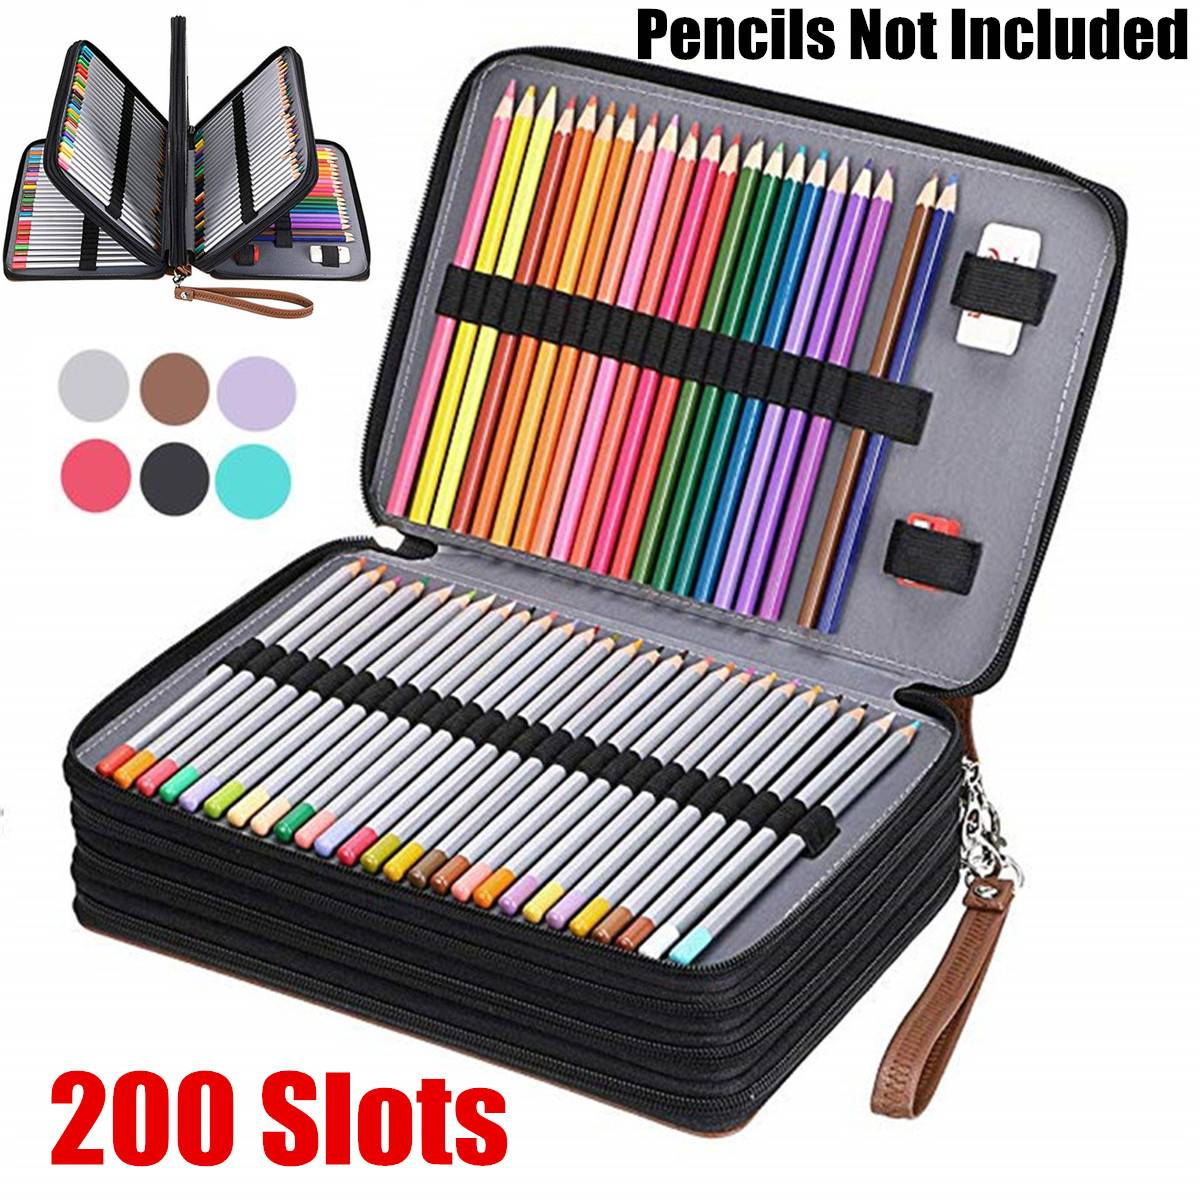 200 Holes School Pencil Case PU Leather Penal Drawing Pen Box Big Cartridge Bag 4 Layers Pencilcase Stationery Kit For Student